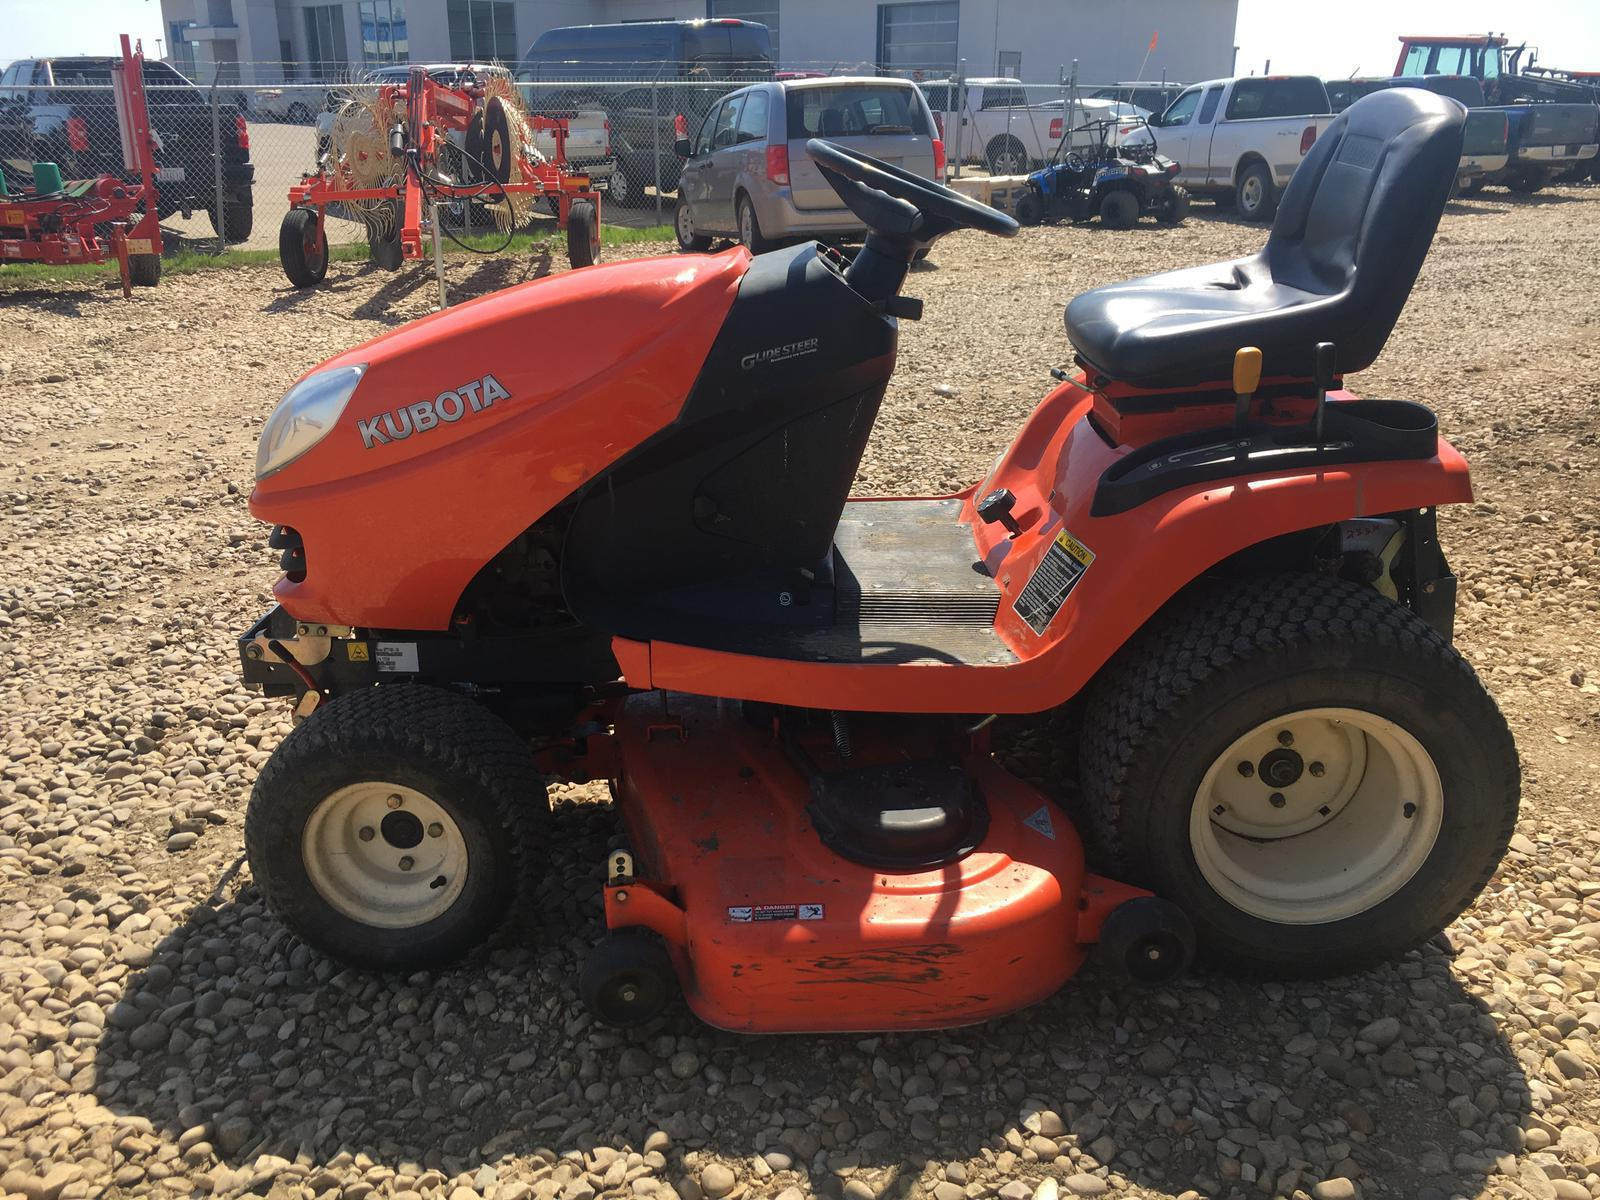 2007 Kubota Gr2100 Lawn Tractor For Sale In St Paul Ab St Paul St Paul Ab 780 645 4639